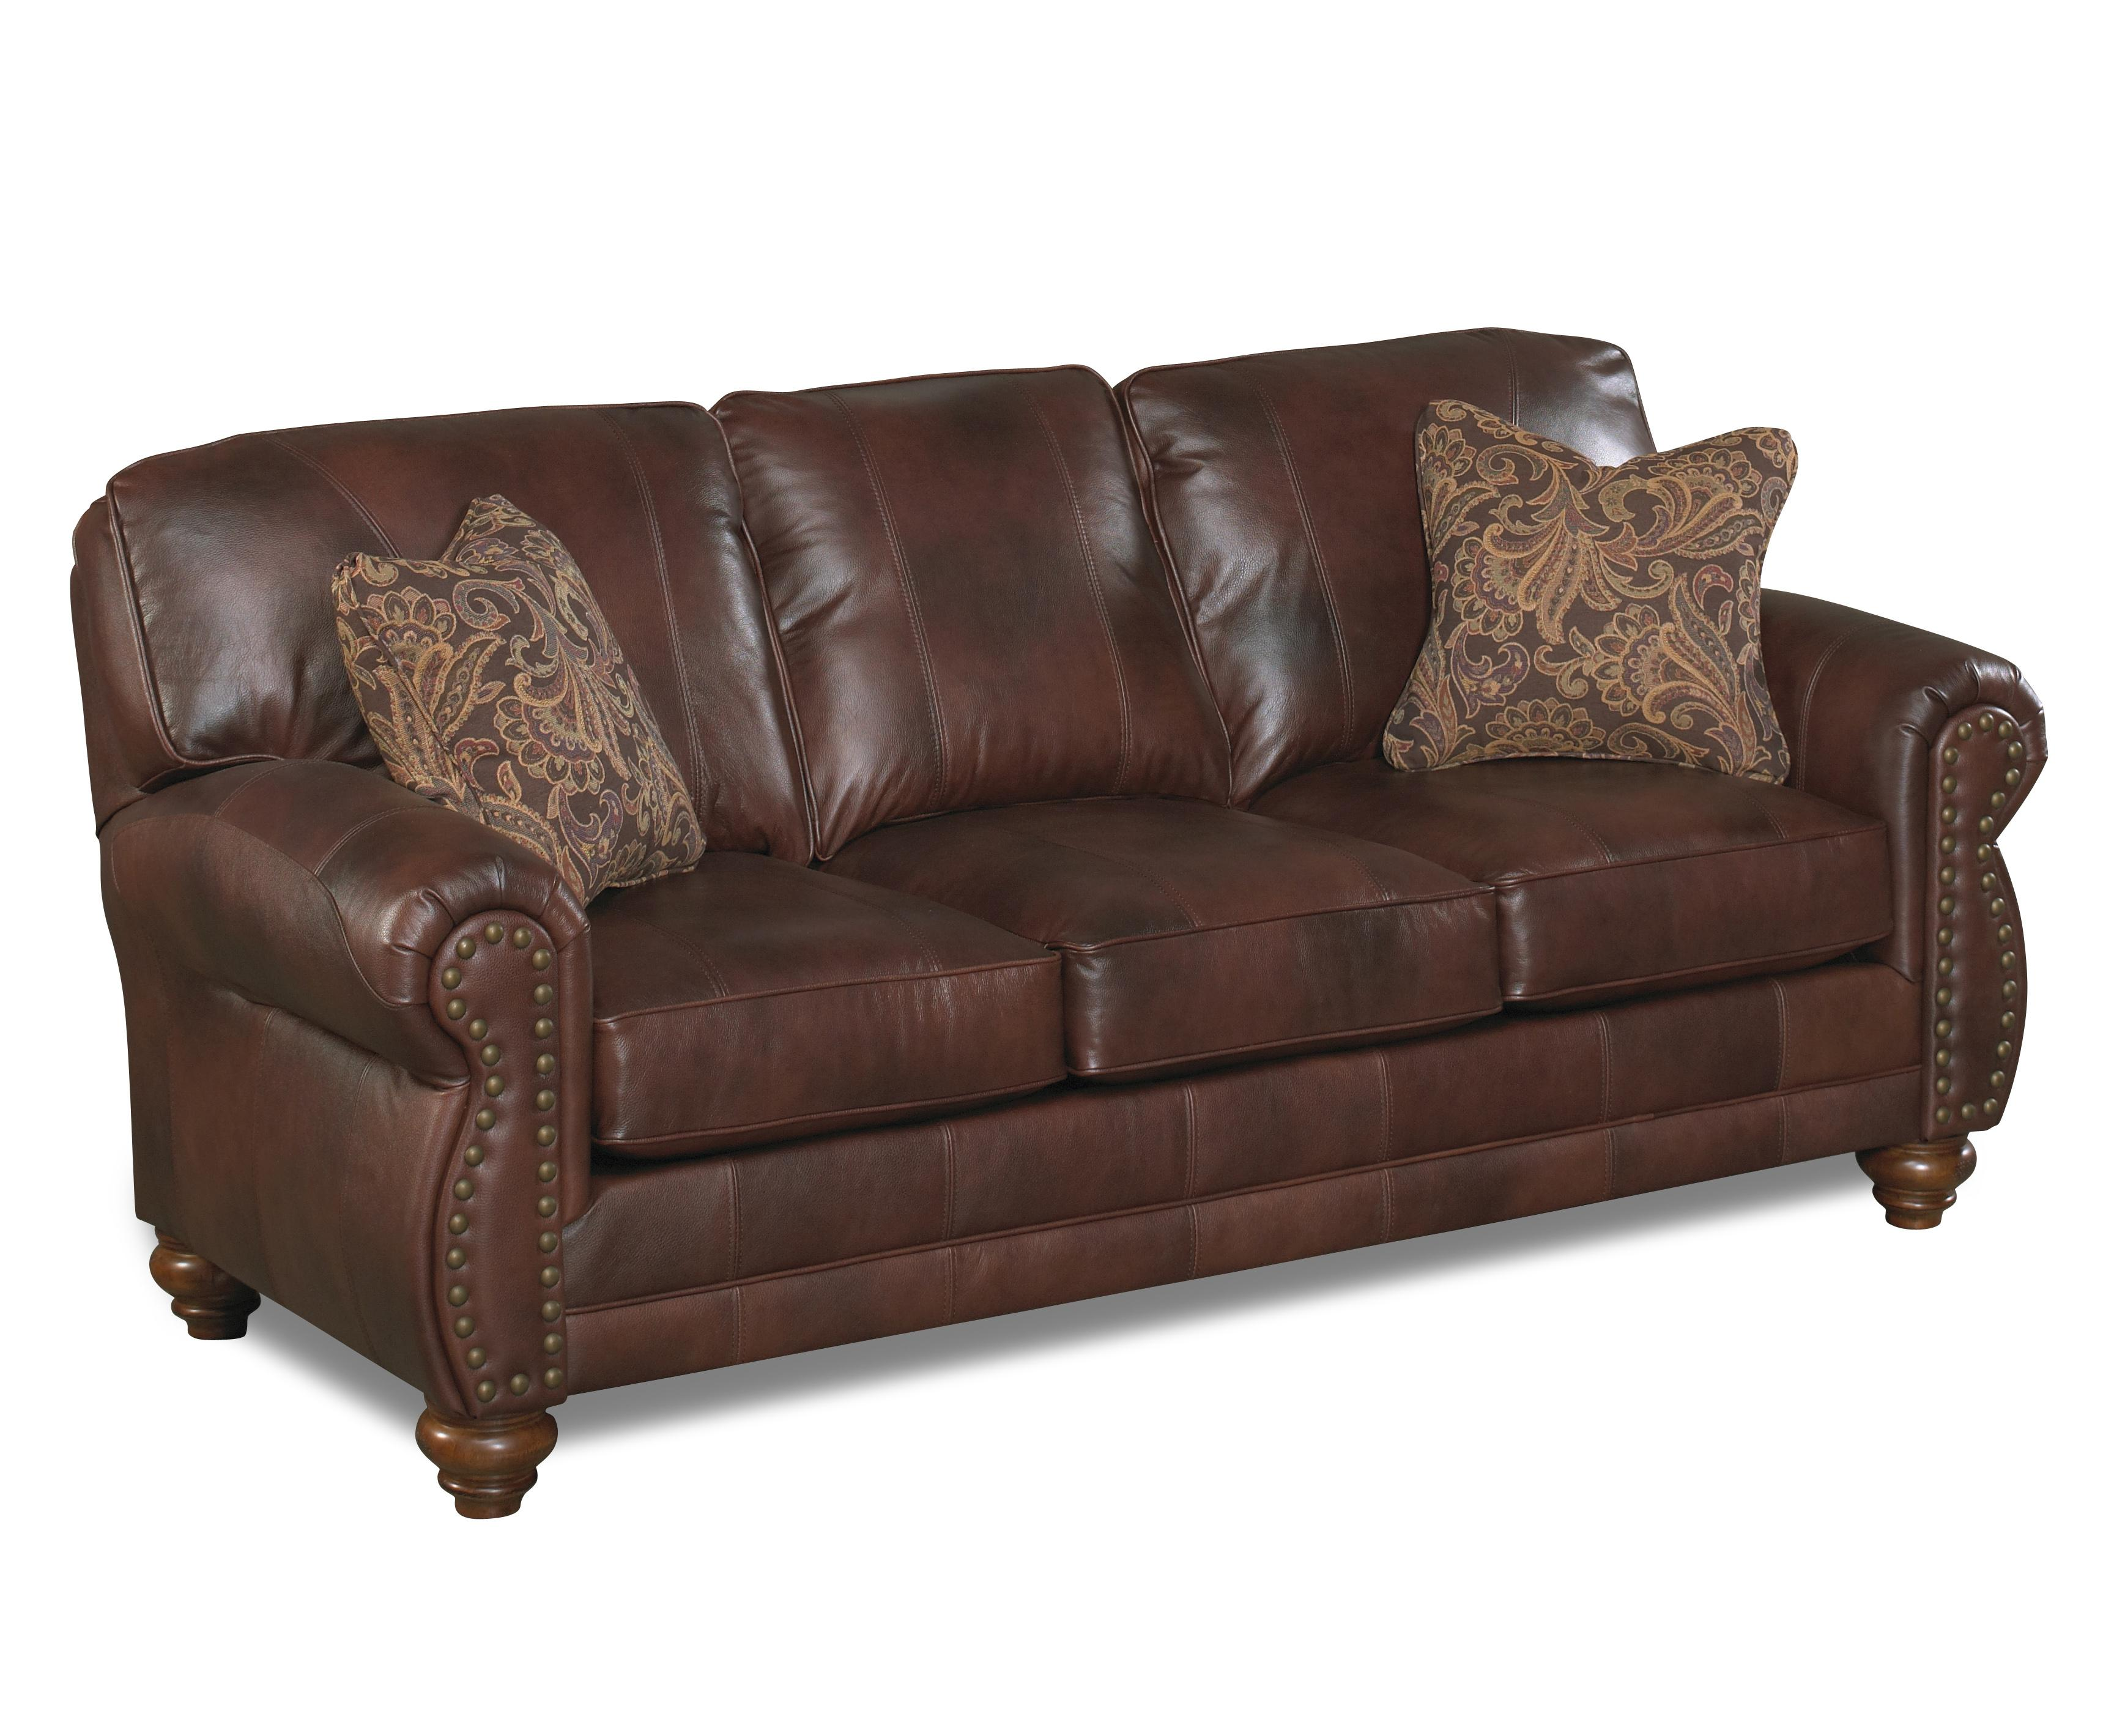 Best home furnishings noble s64lu stationary leather sofa for Best furnishings